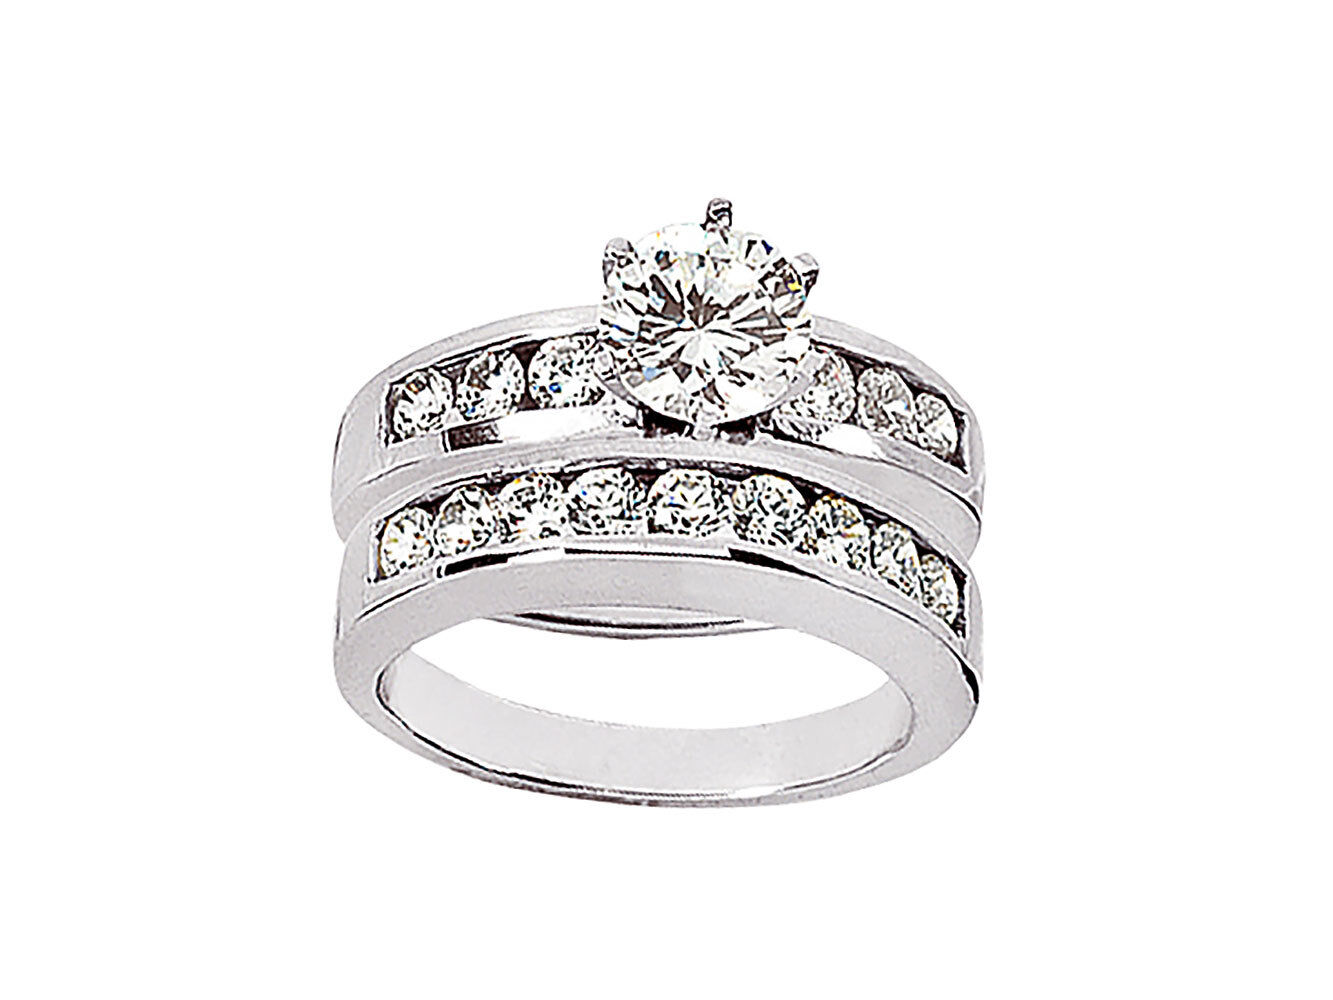 Genuine 1.50Ct Round Cut Diamond Engagement Ring Set Solid 10k gold KL I1